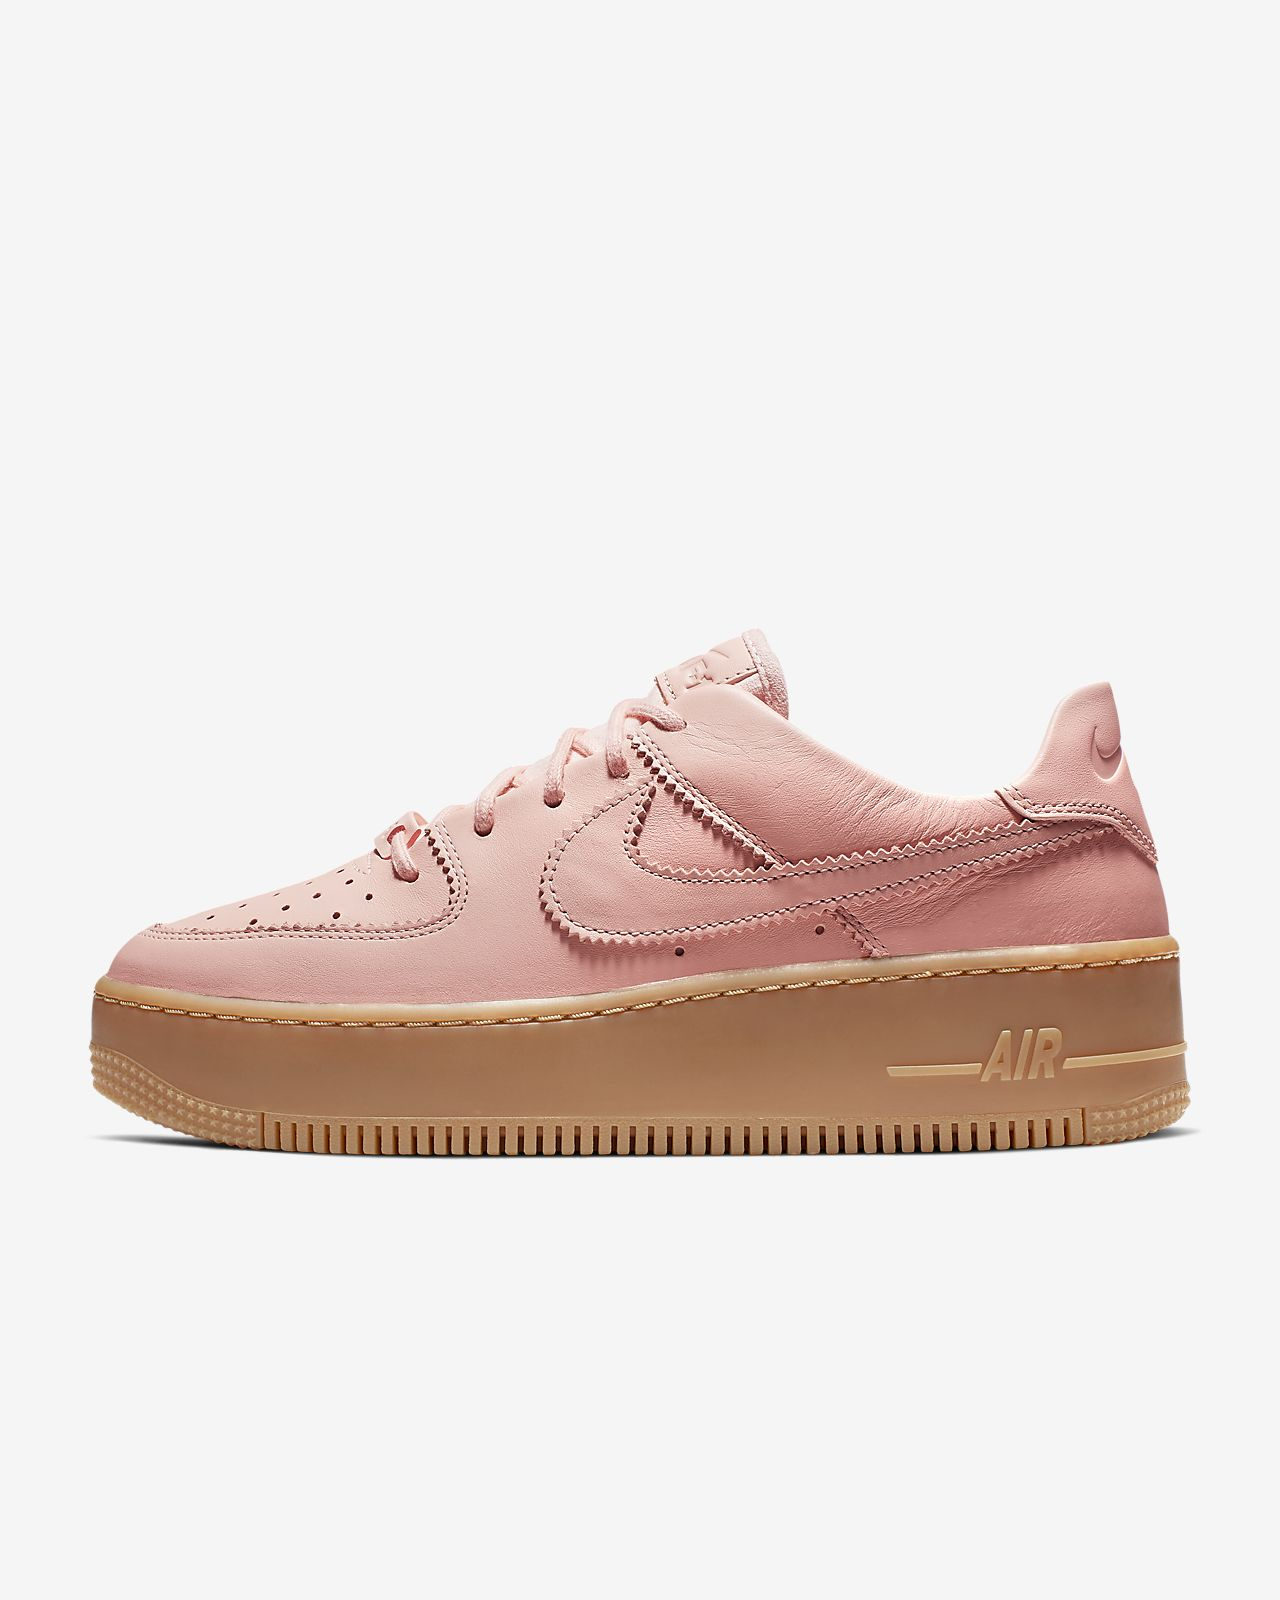 091381e1fb20 Nike Air Force 1 Sage Low LX Women s Shoe. Nike.com ZA